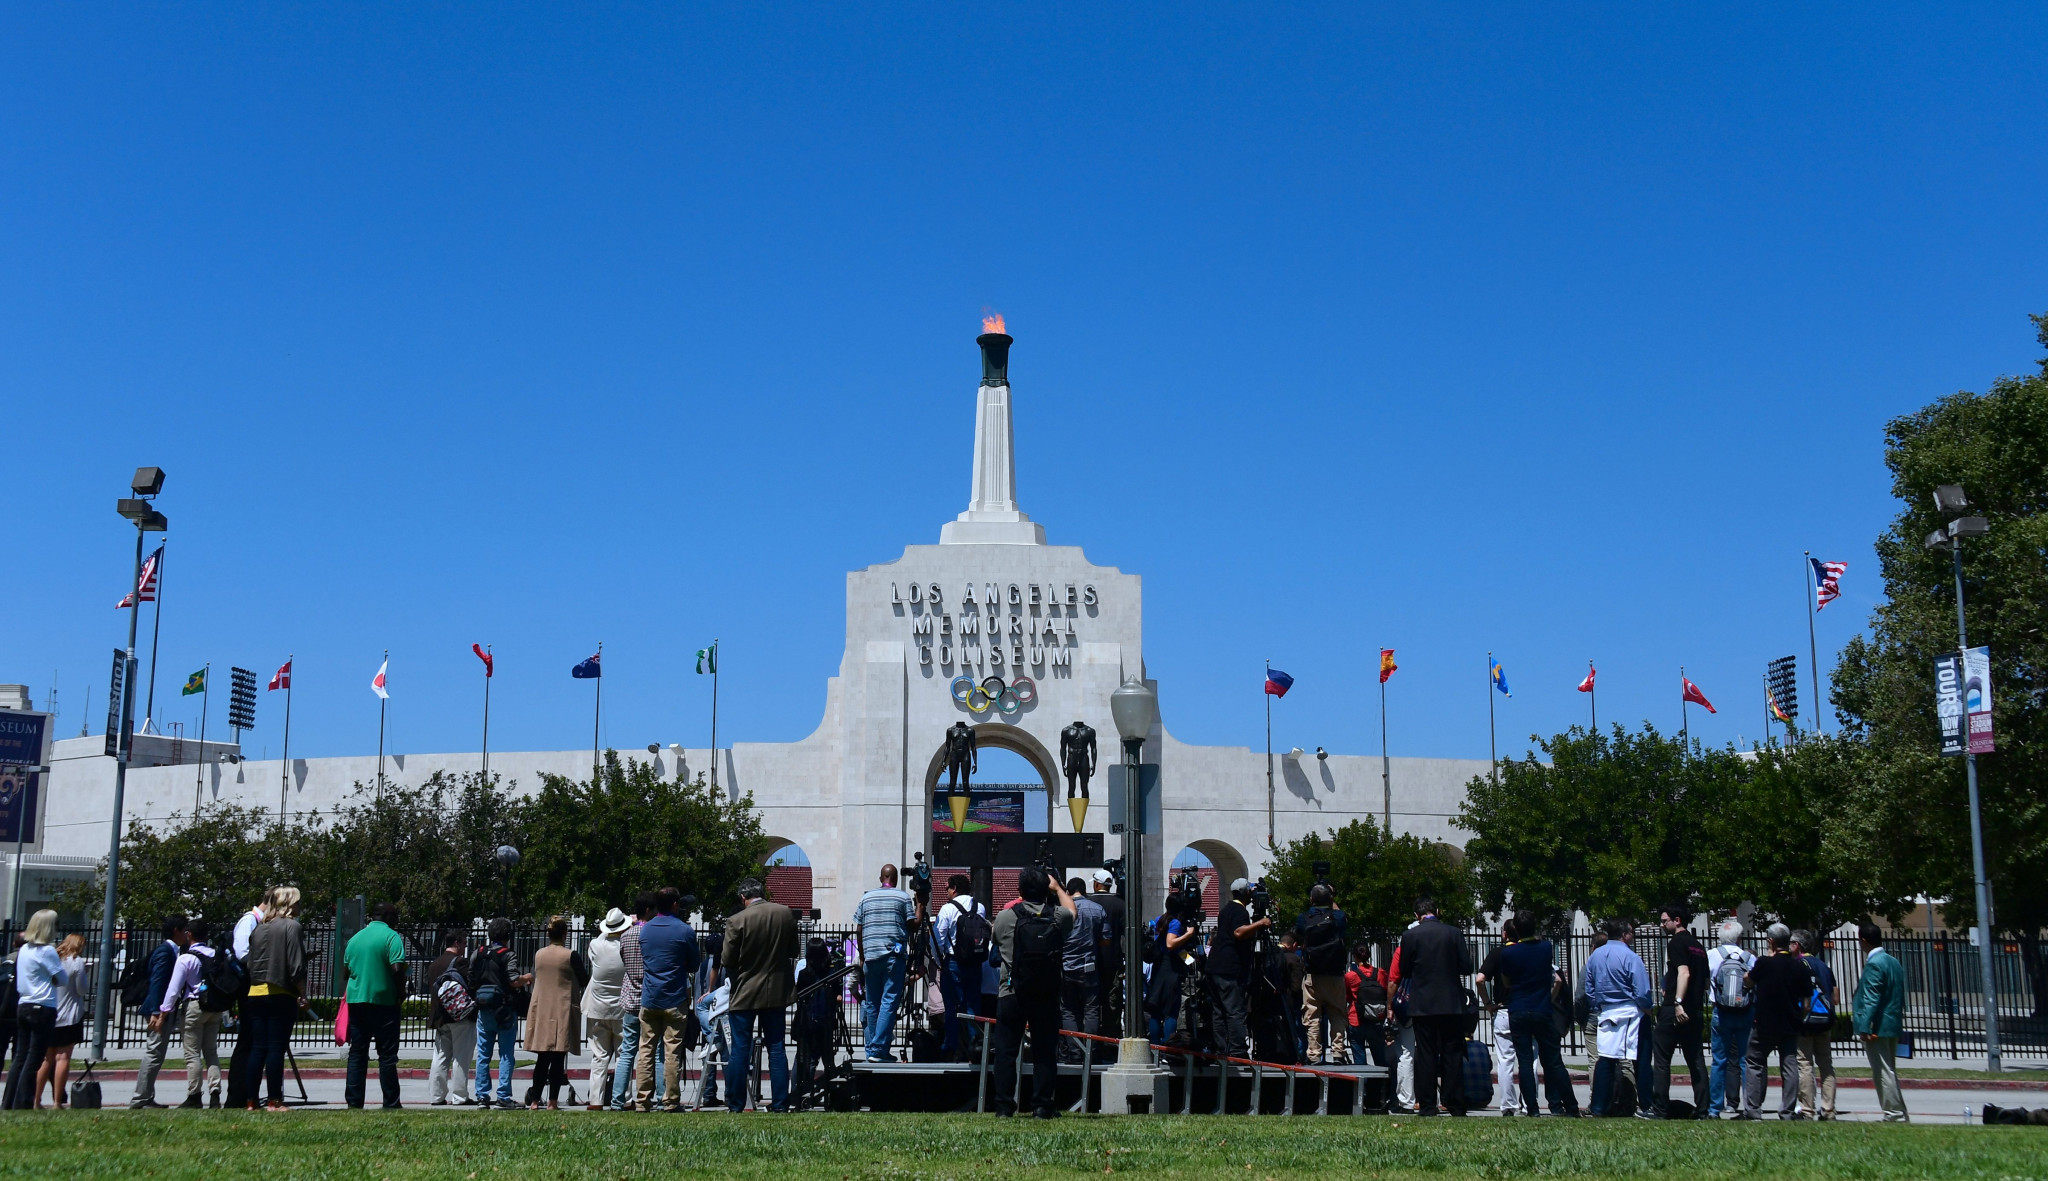 Bach to light Olympic Cauldron in Los Angeles Coliseum on September 17